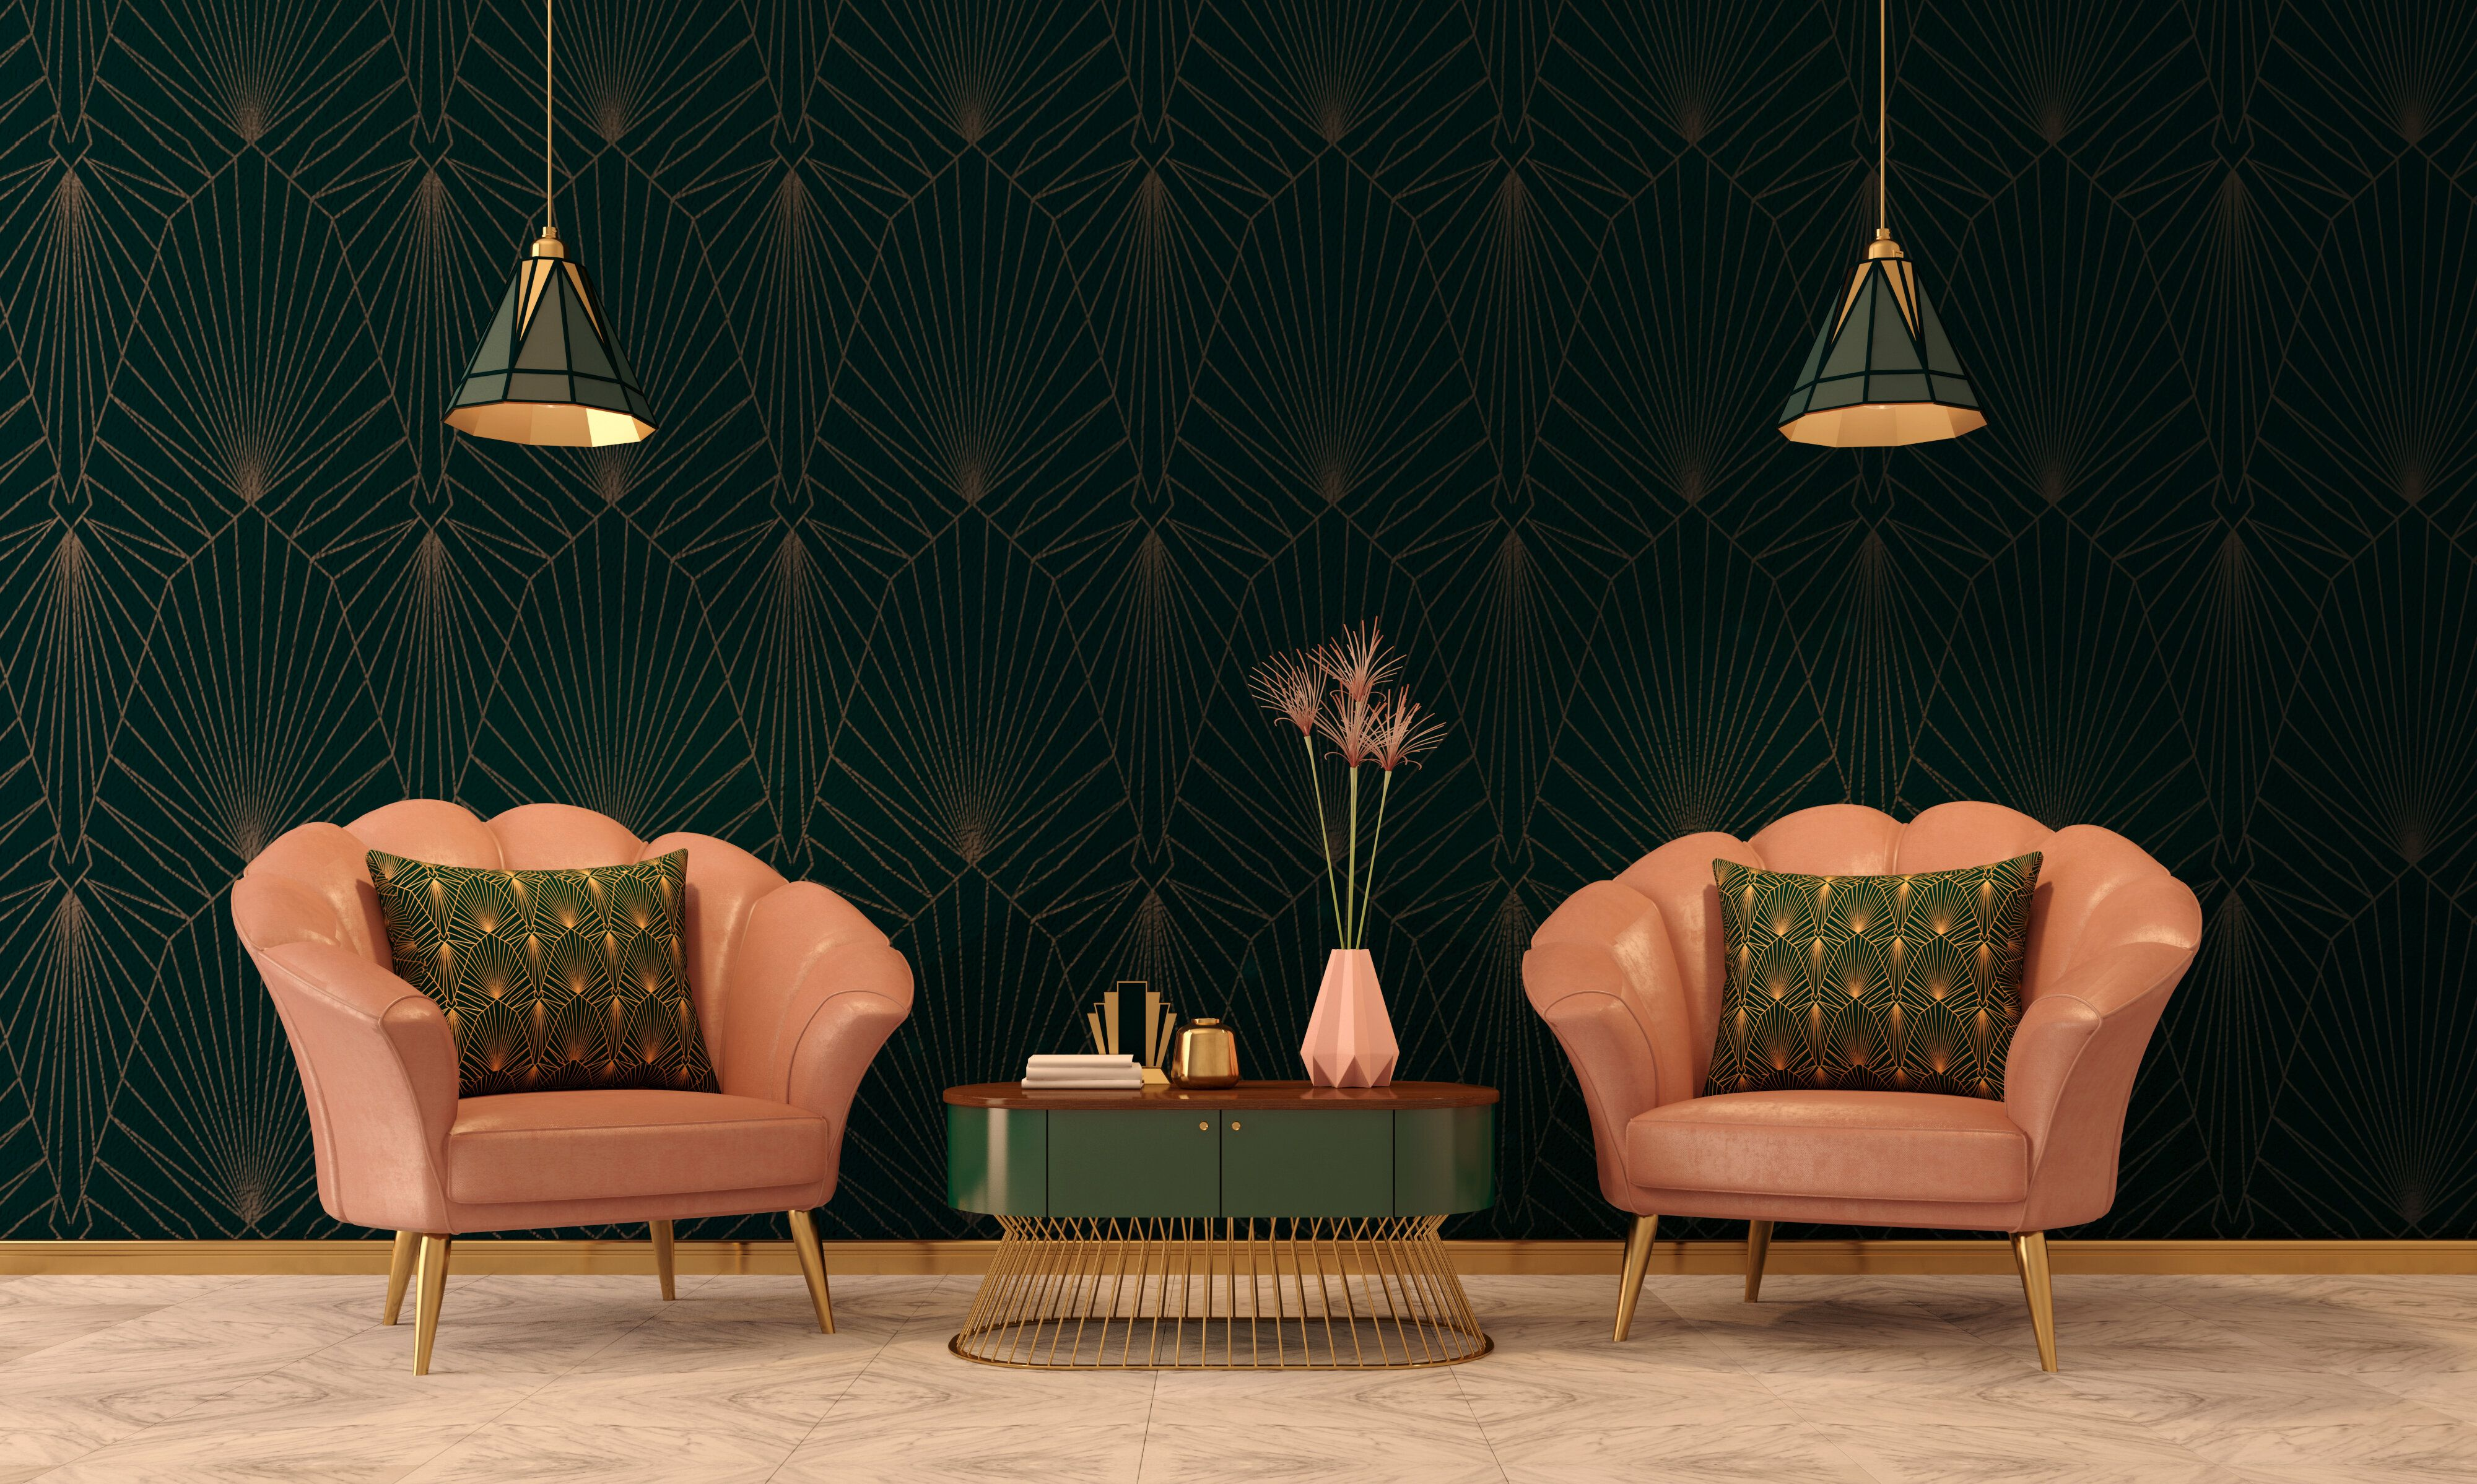 Where To Buy Art Deco-Inspired Furniture And Decor Online On A Budget